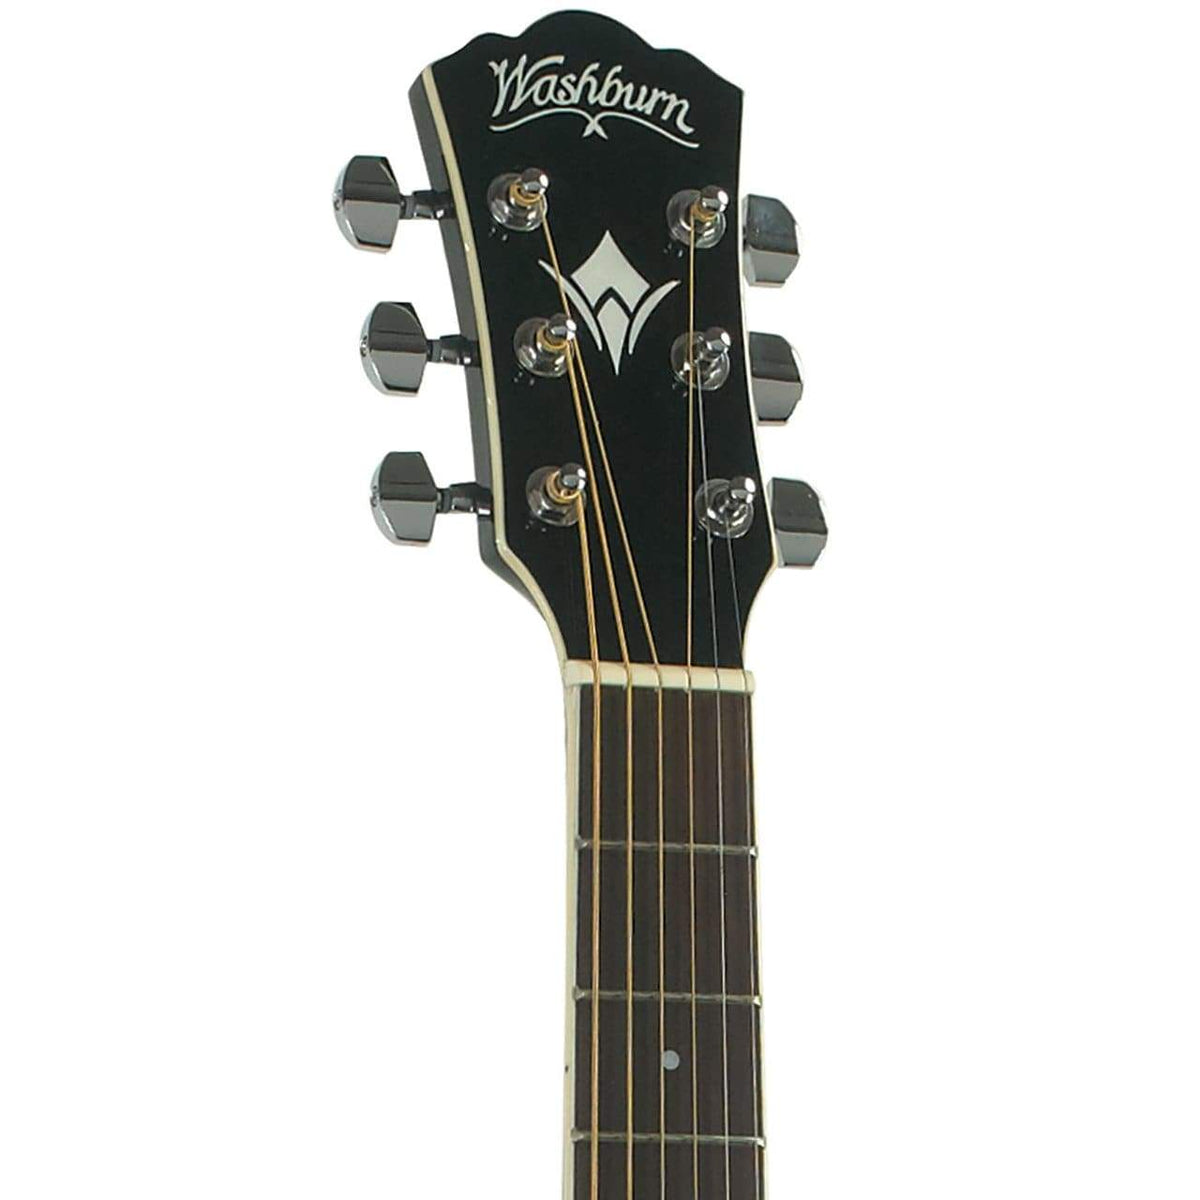 Washburn EA10B Festival Series Semi-Acoustic Guitar - Black